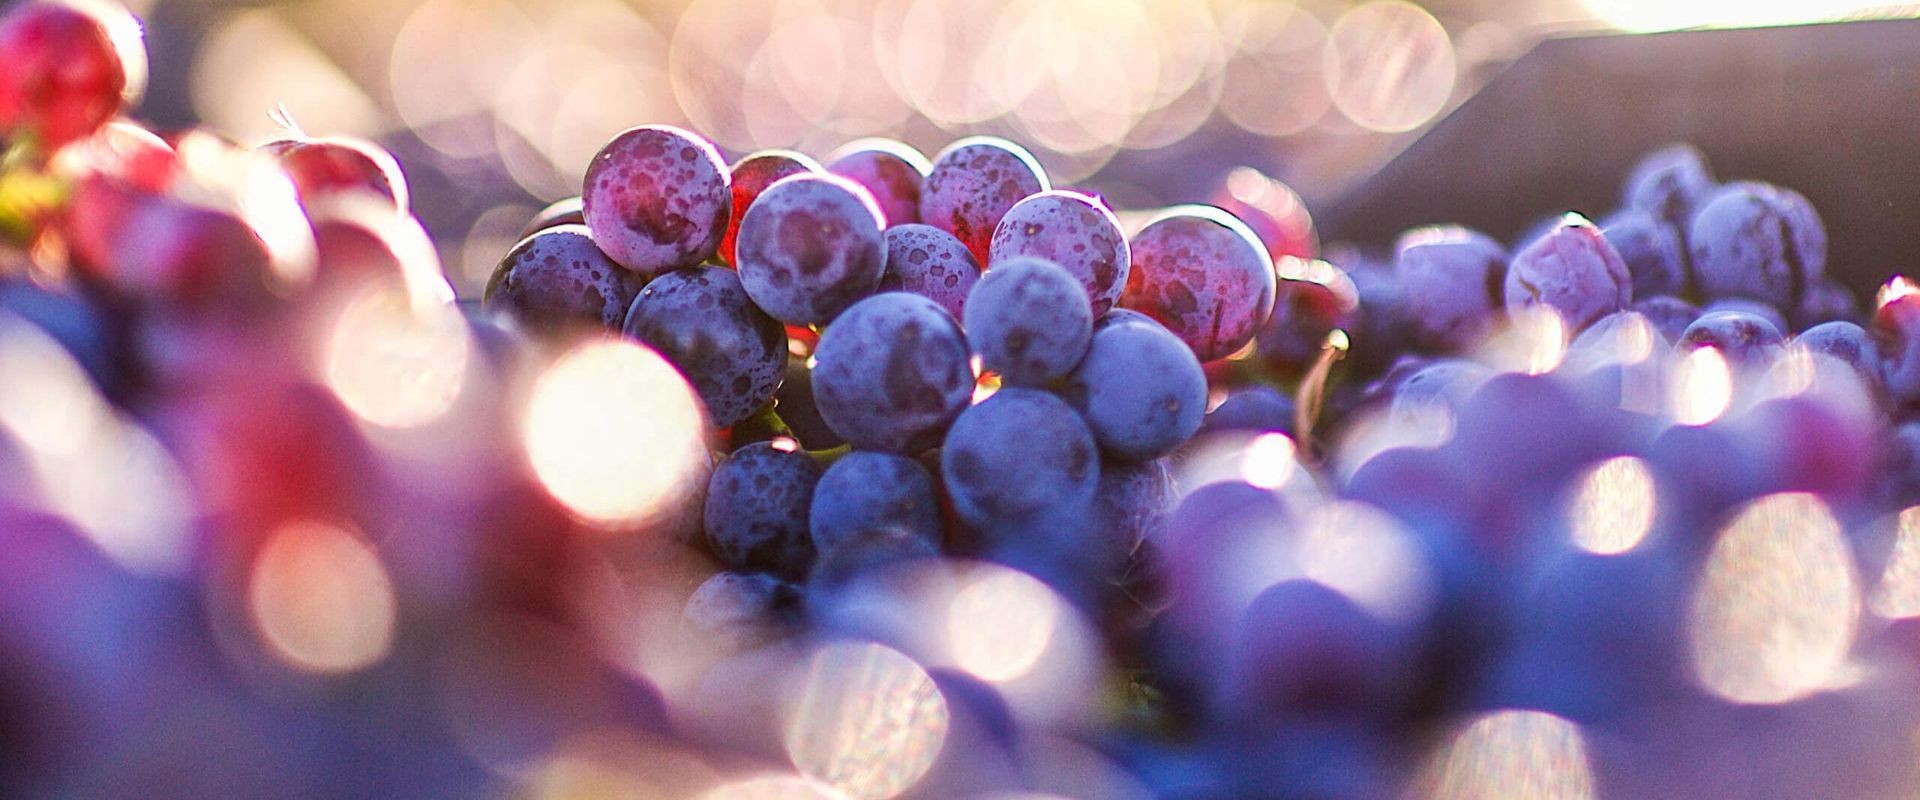 vine grapes in sunlight